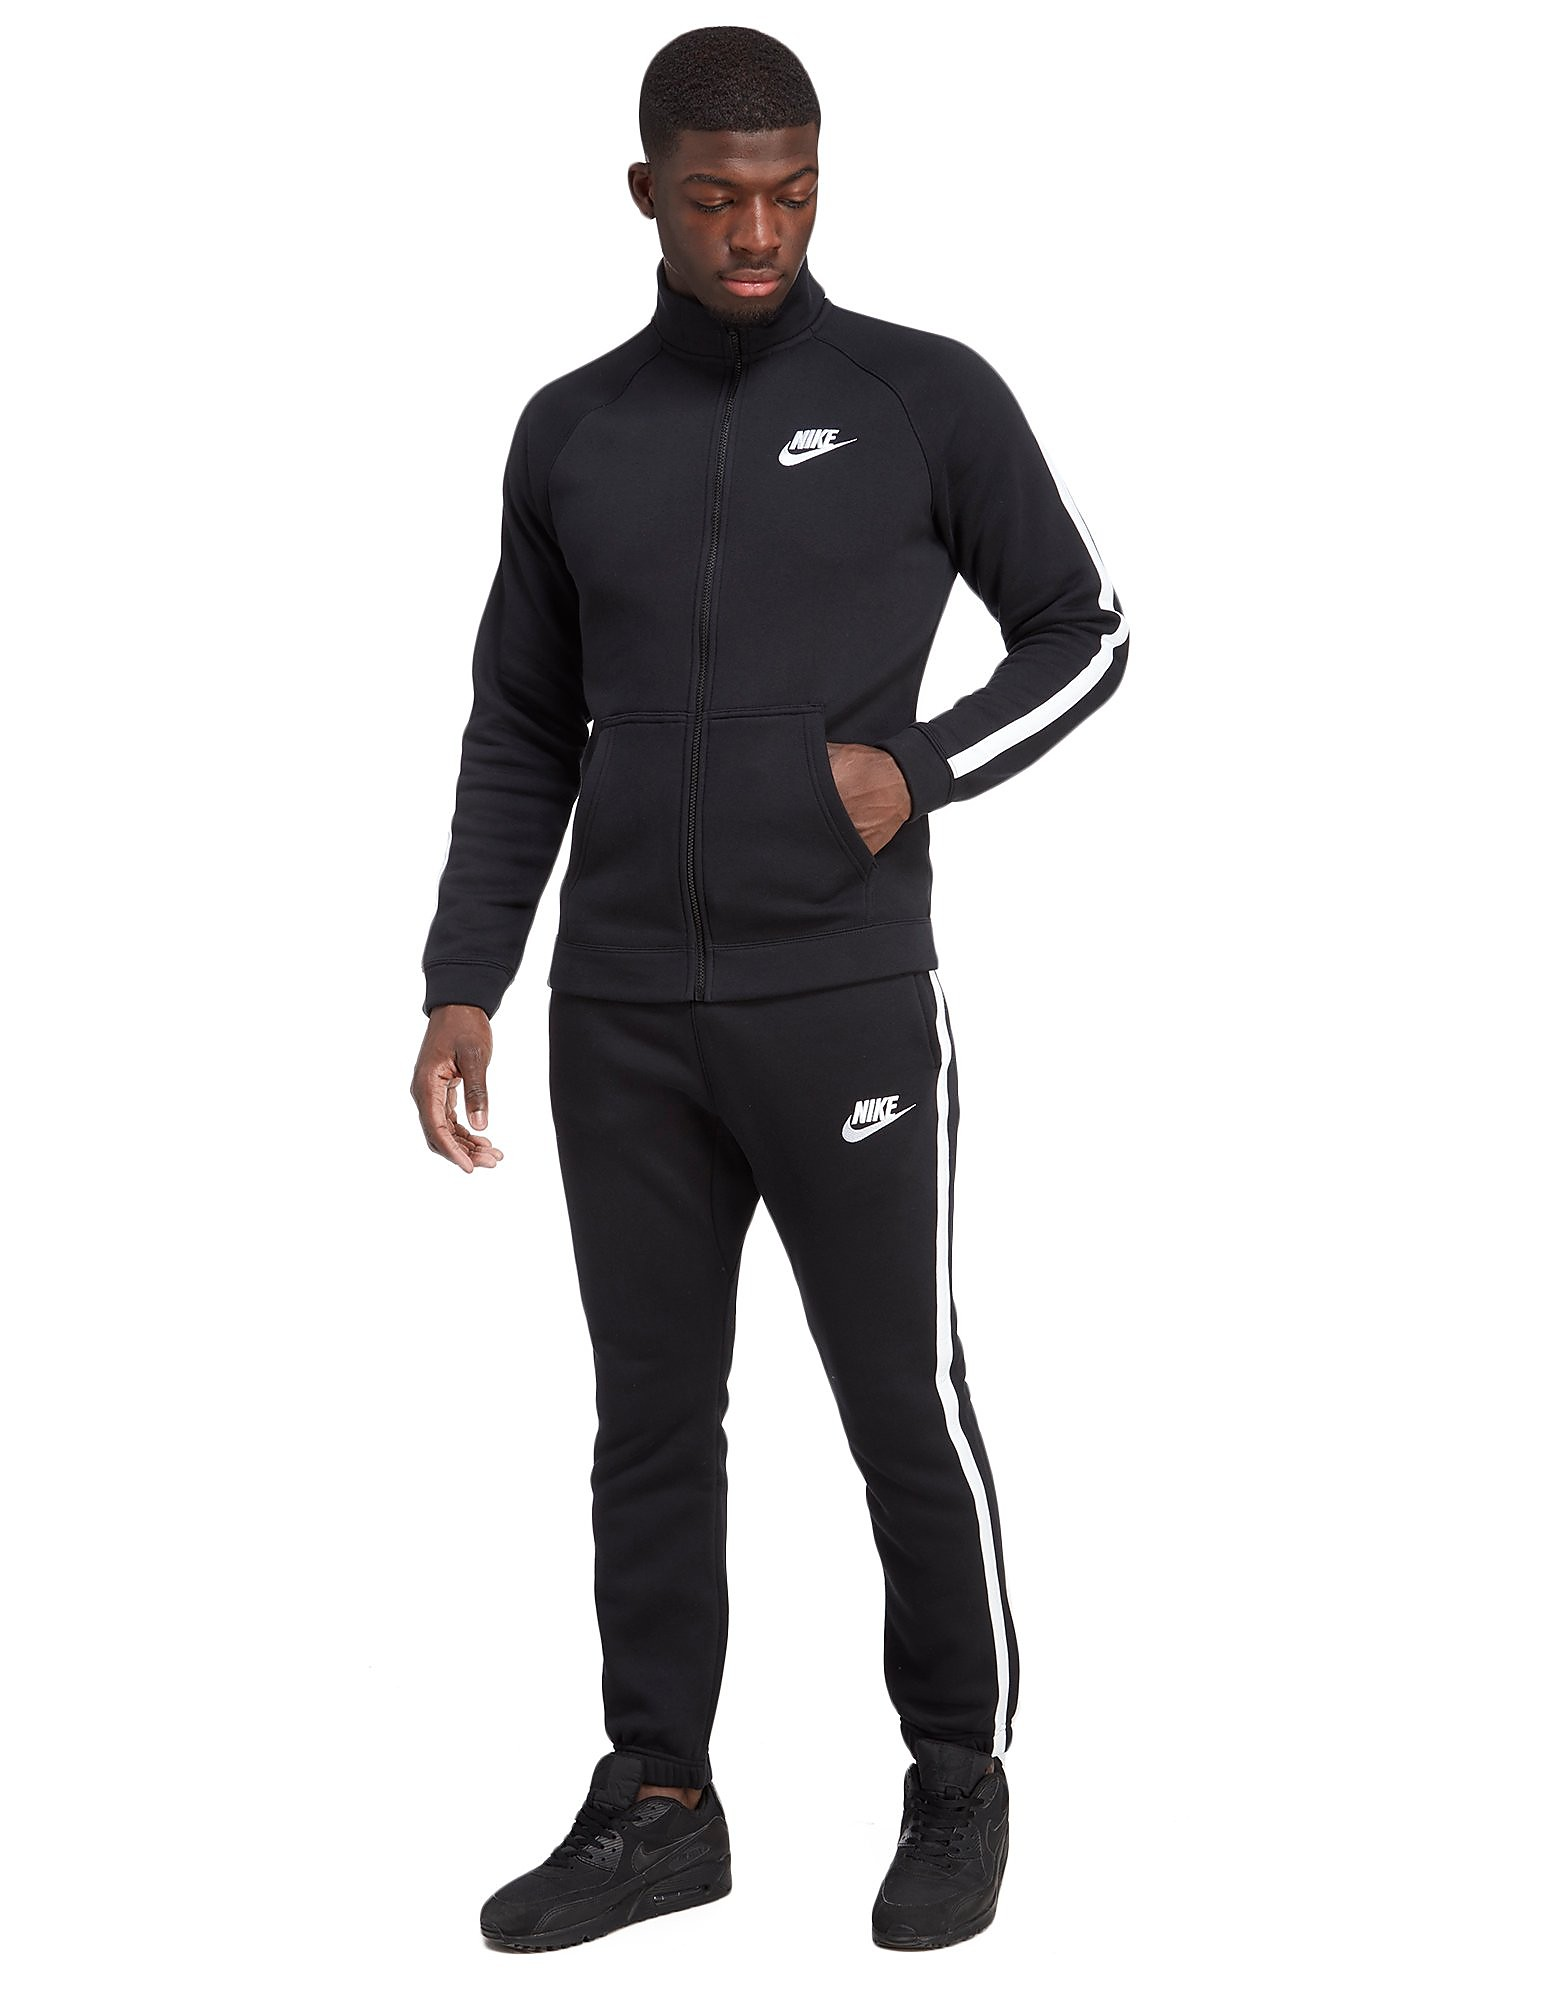 Nike Season Fleece Suit